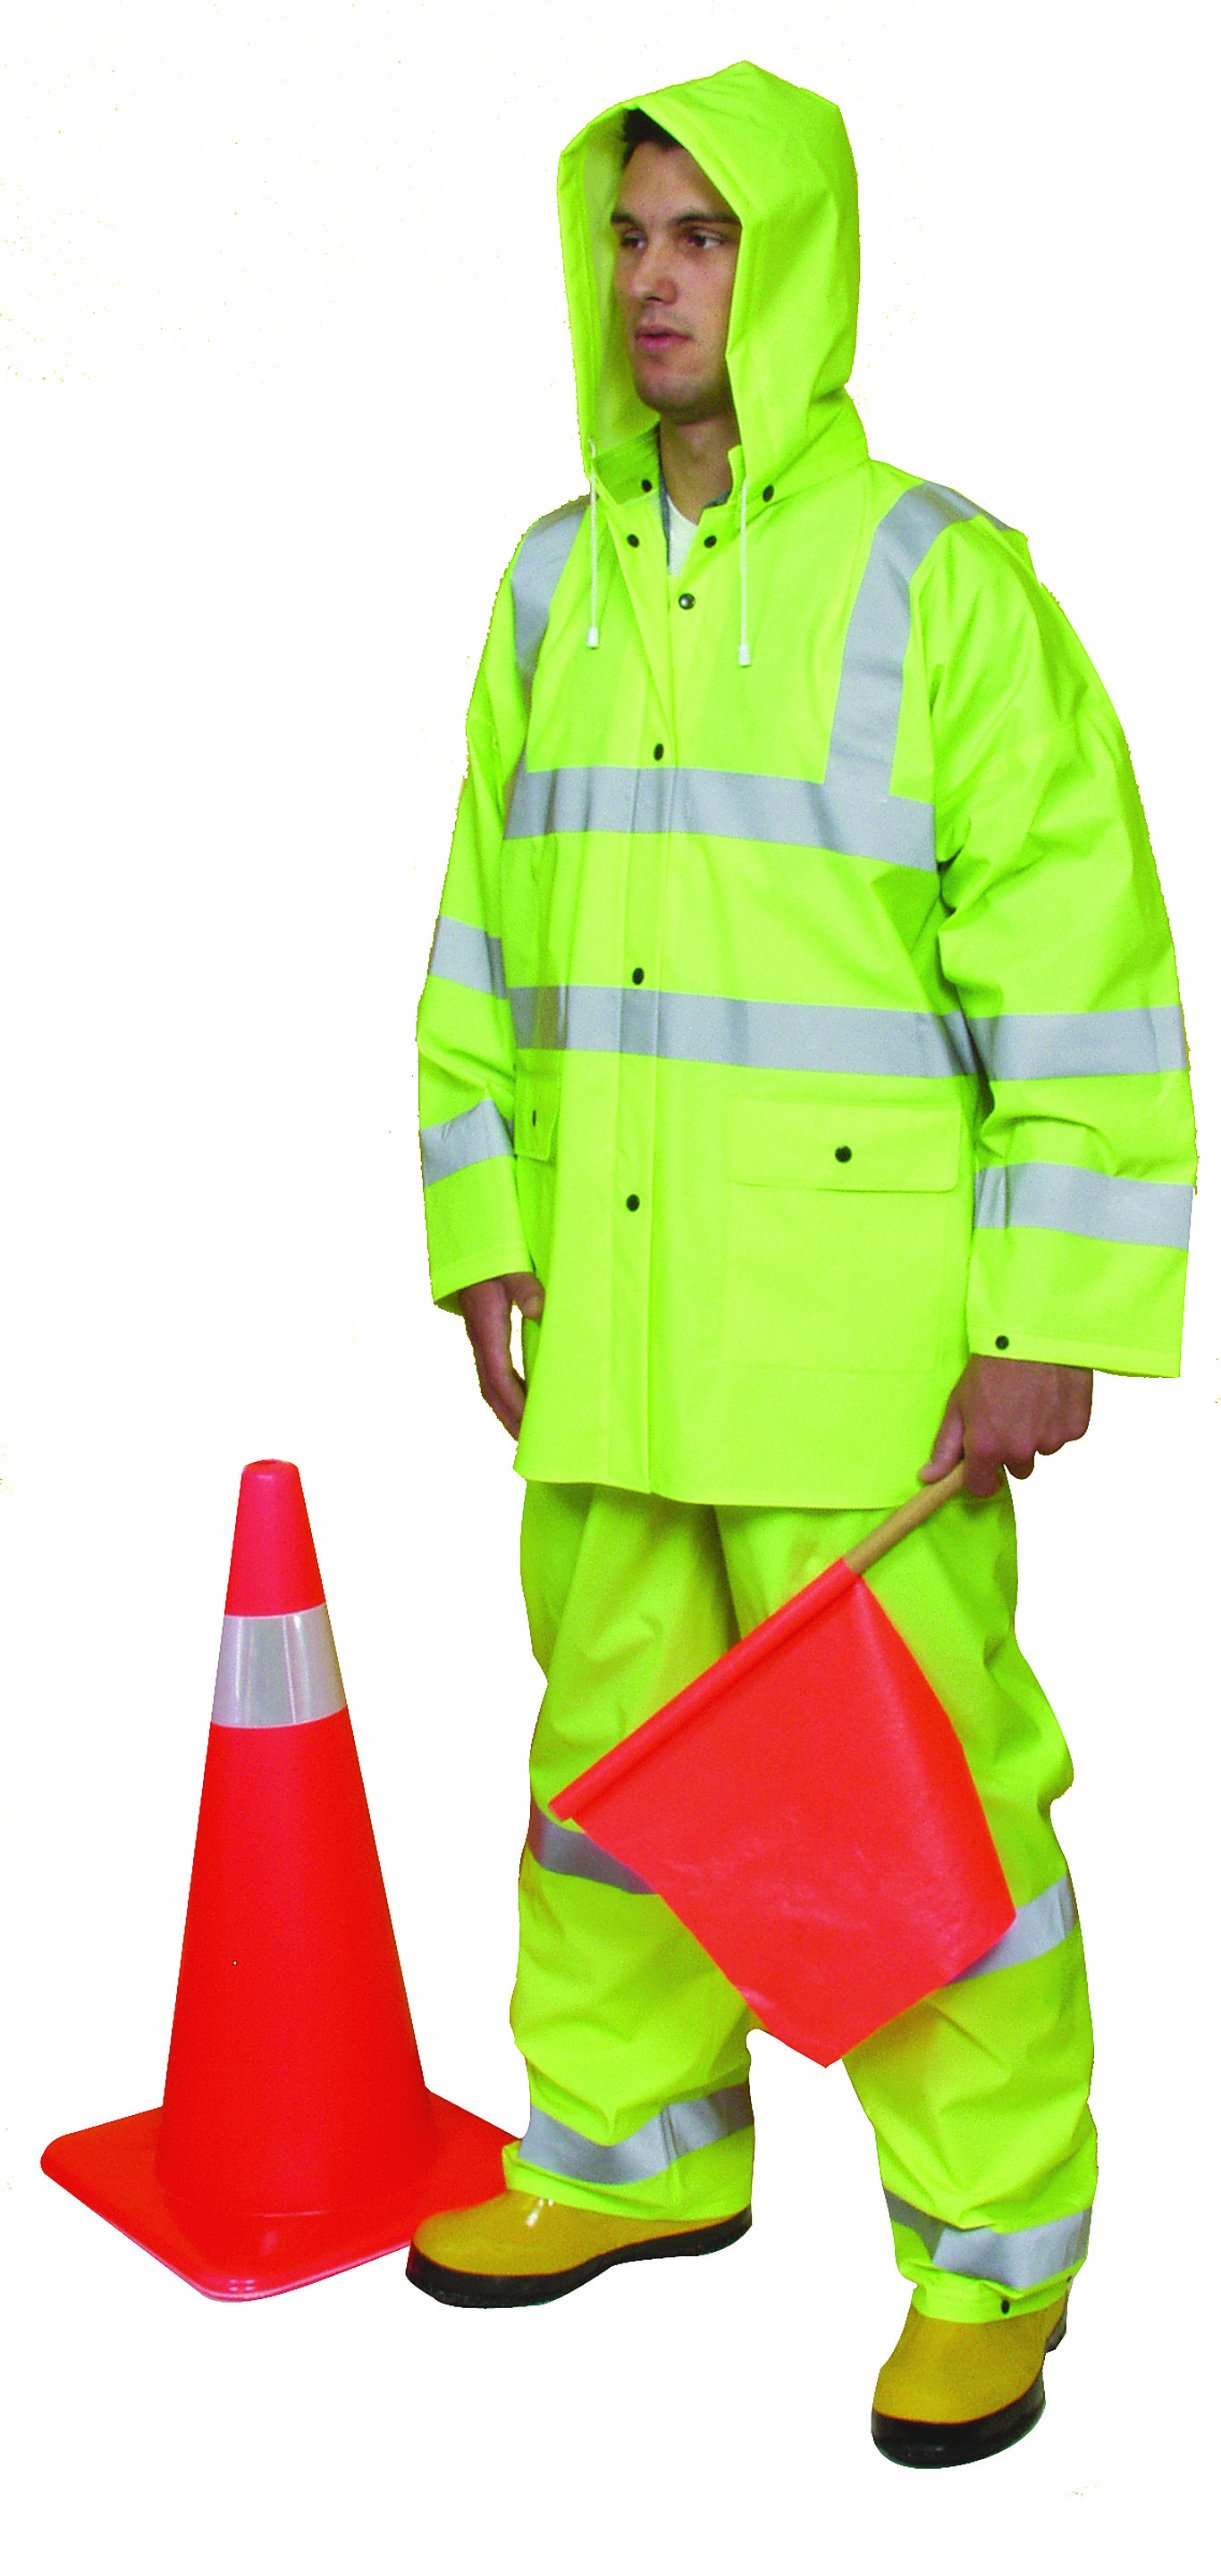 Mutual 14511 3 Piece PVC/High Visibility Polyester ANSI Class 3 Rain Suit, Large, Lime